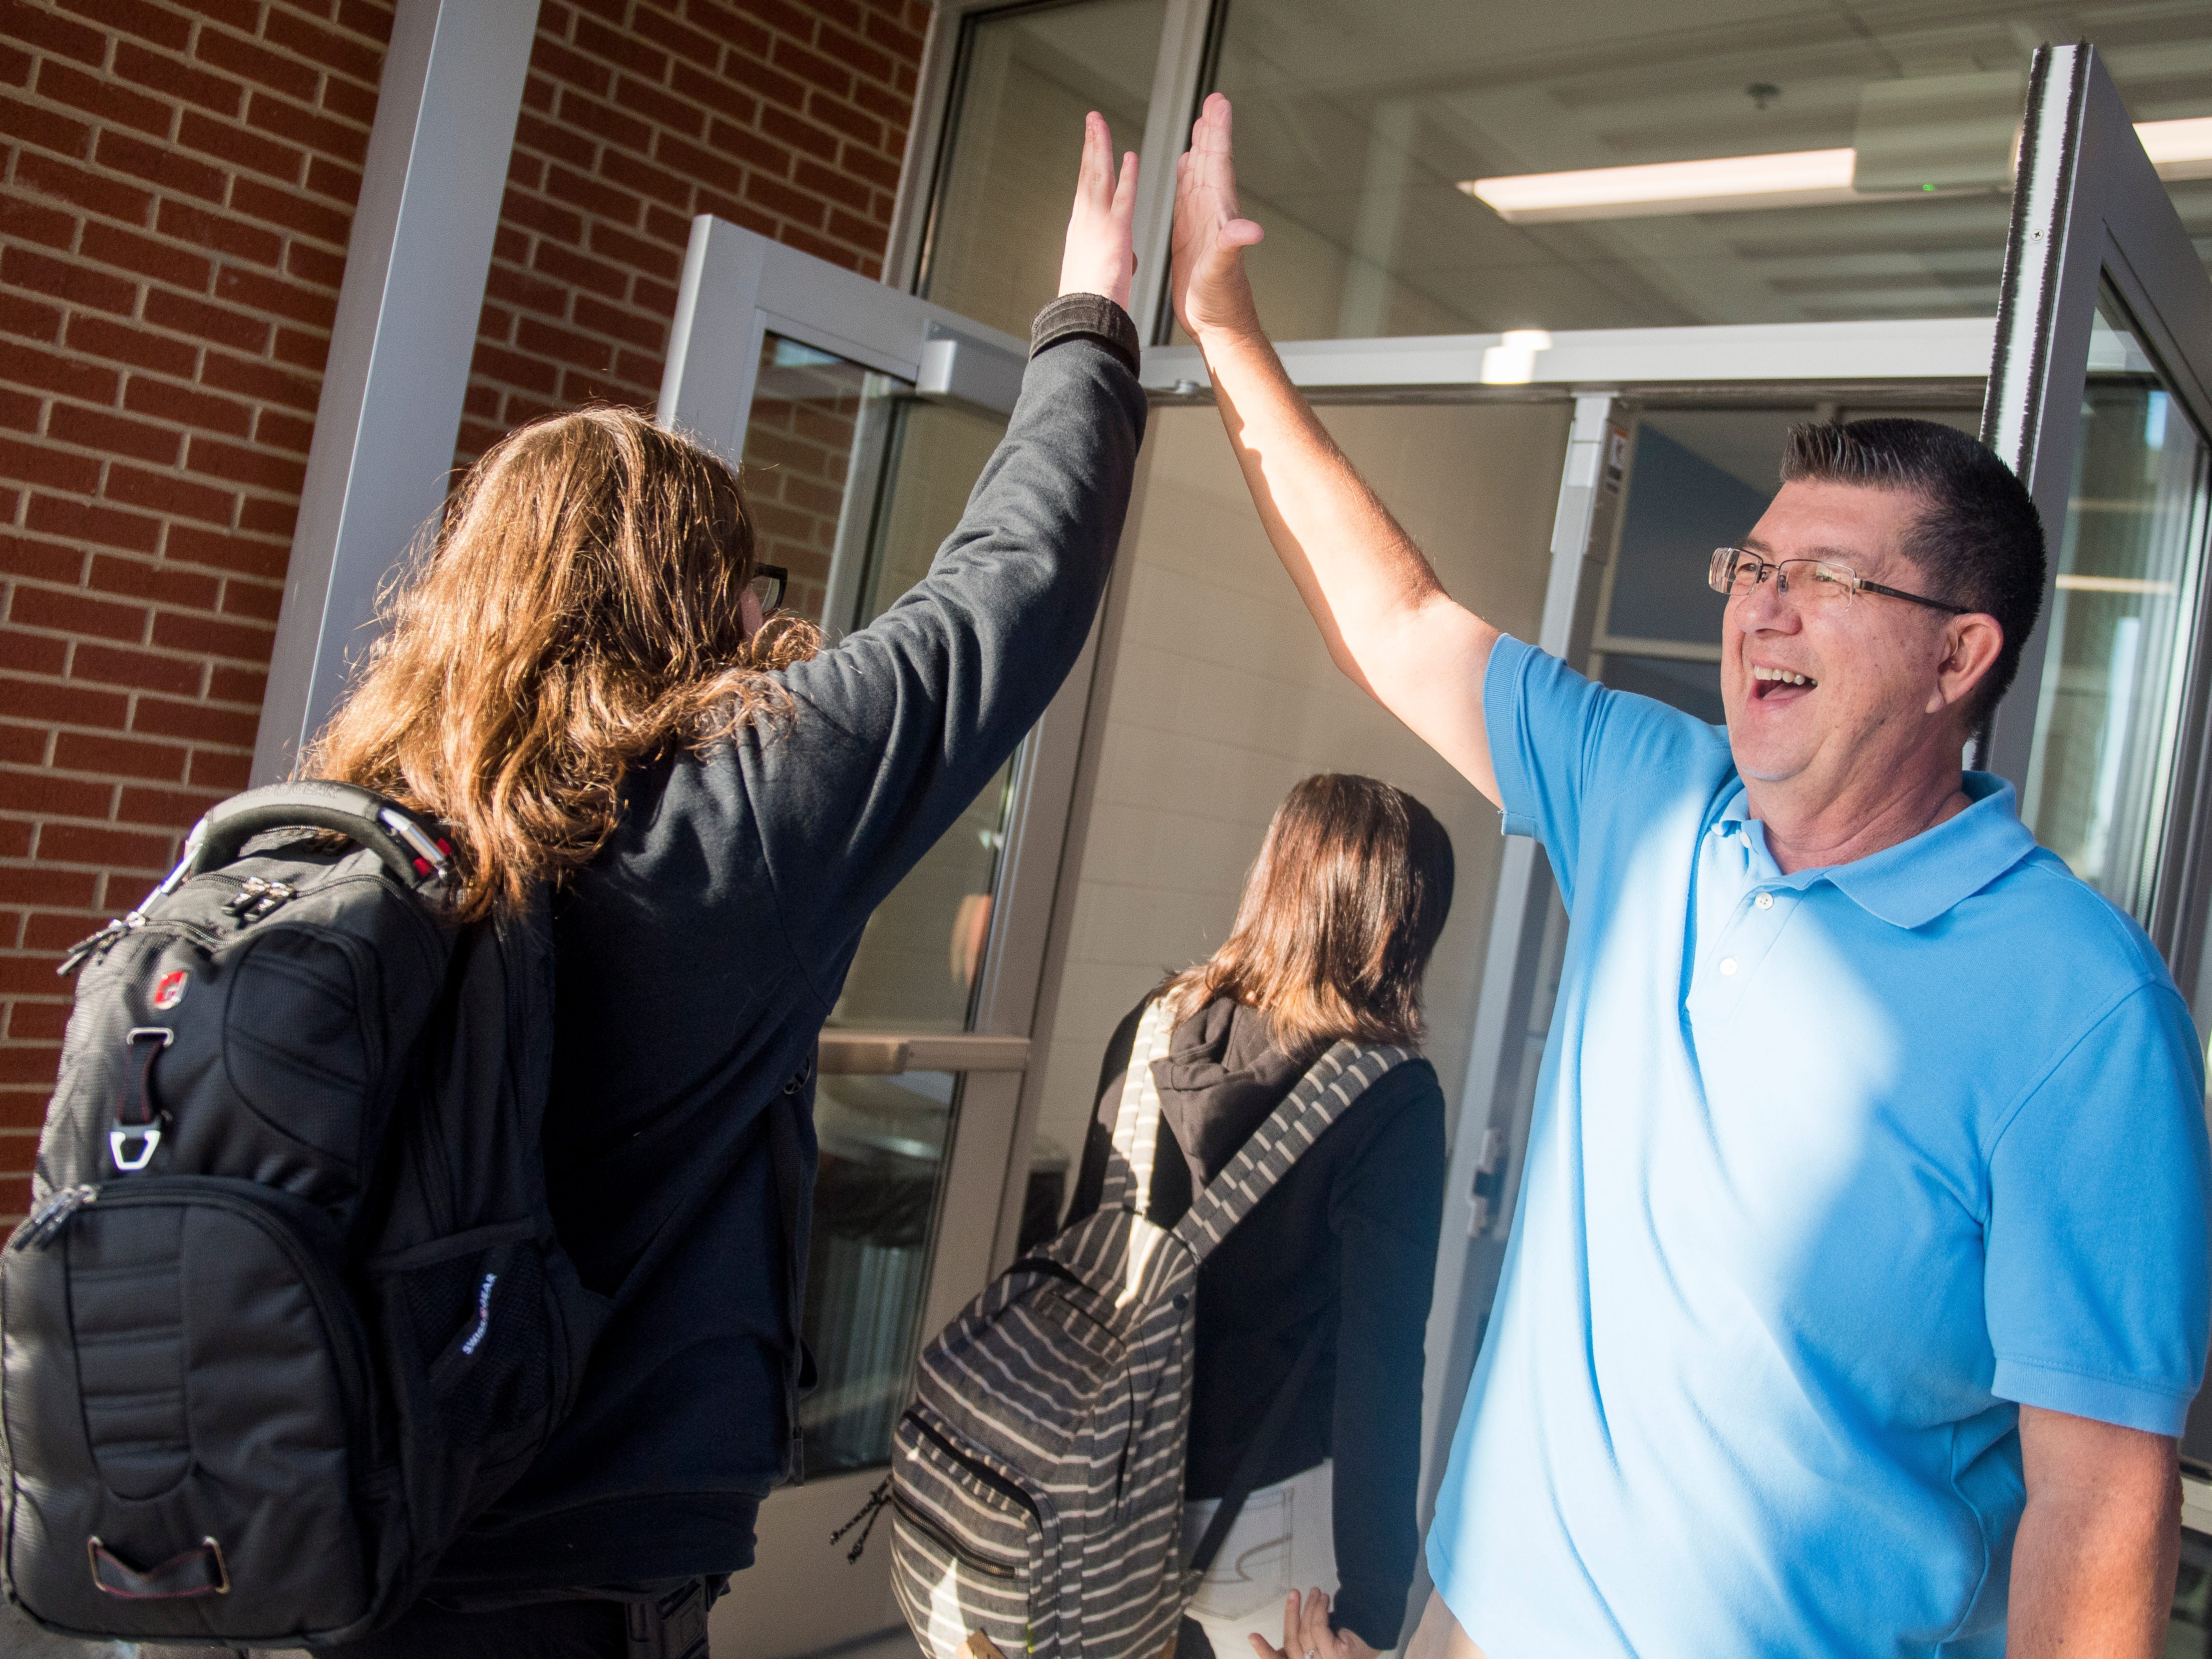 Fairview Baptist pastor Keith Weaver, right, high fives students as they enter the new Gibbs Middle School for the first day of school on Wednesday, August 8, 2018.